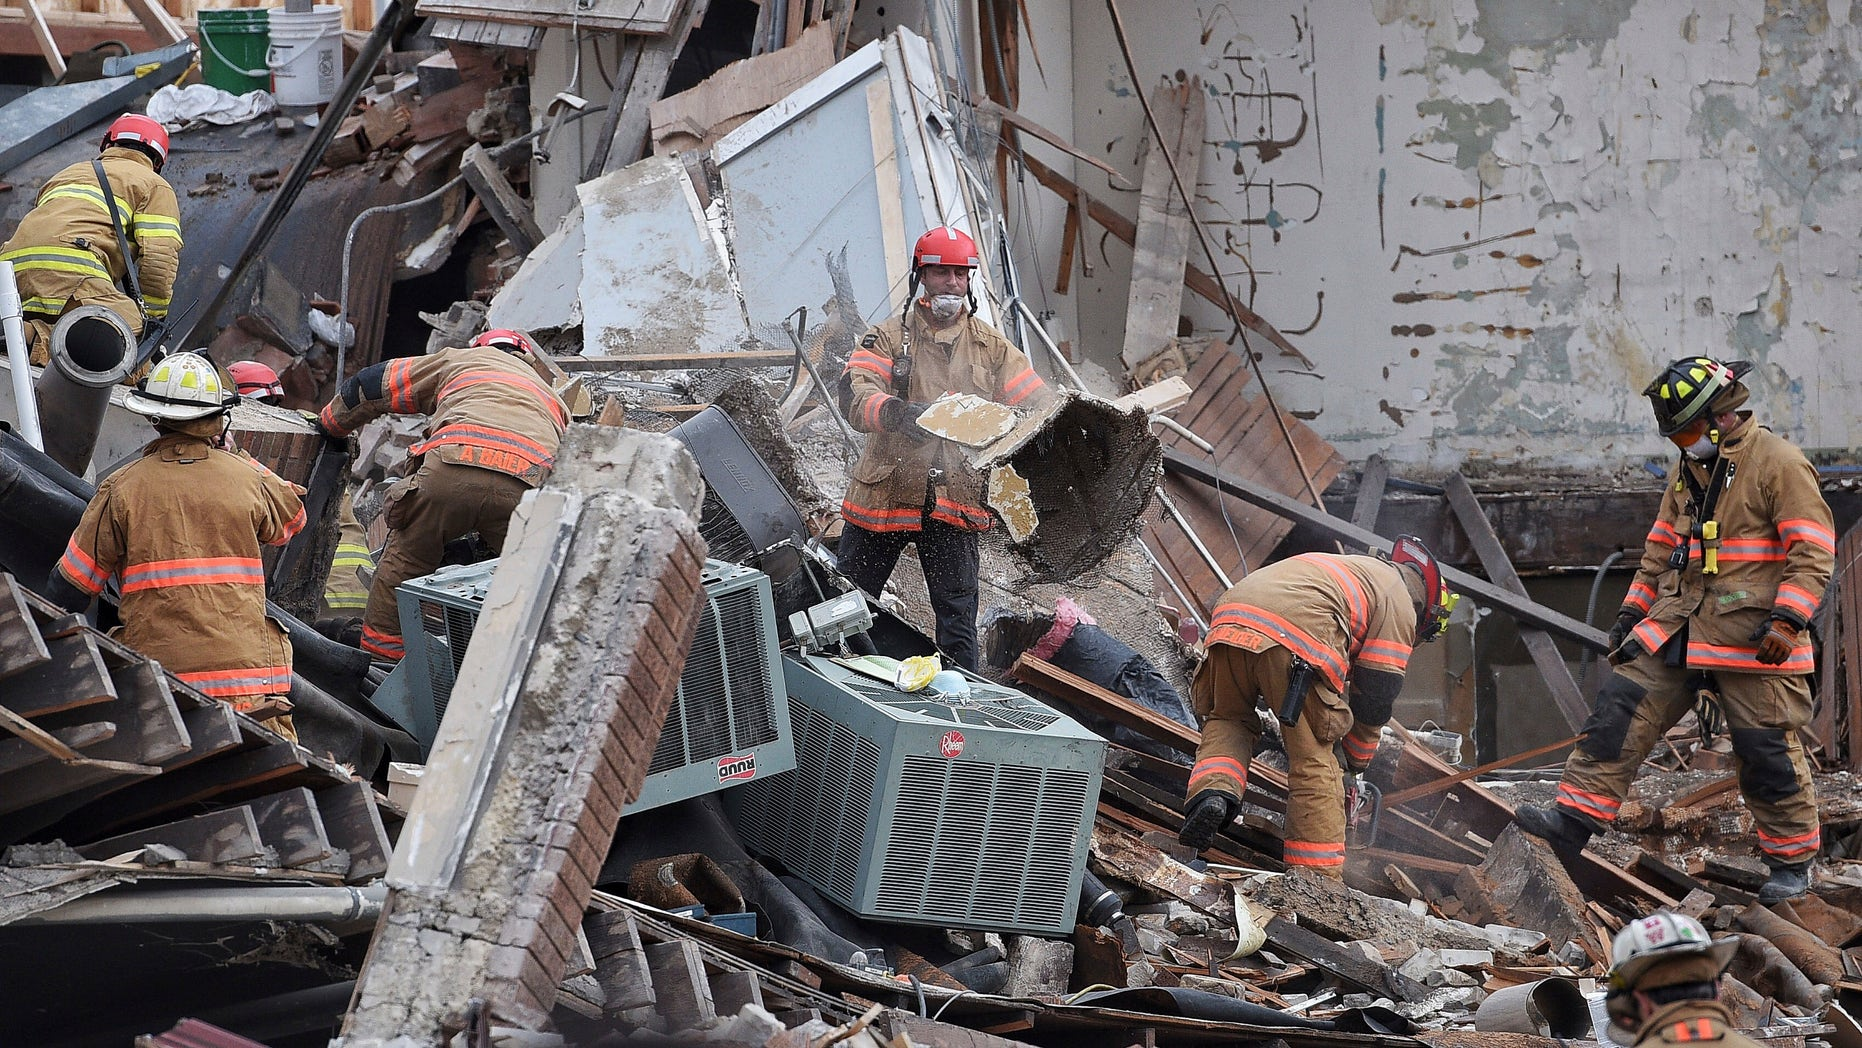 Emergency crews clear debris at the scene of the building collapse in Sioux Falls.